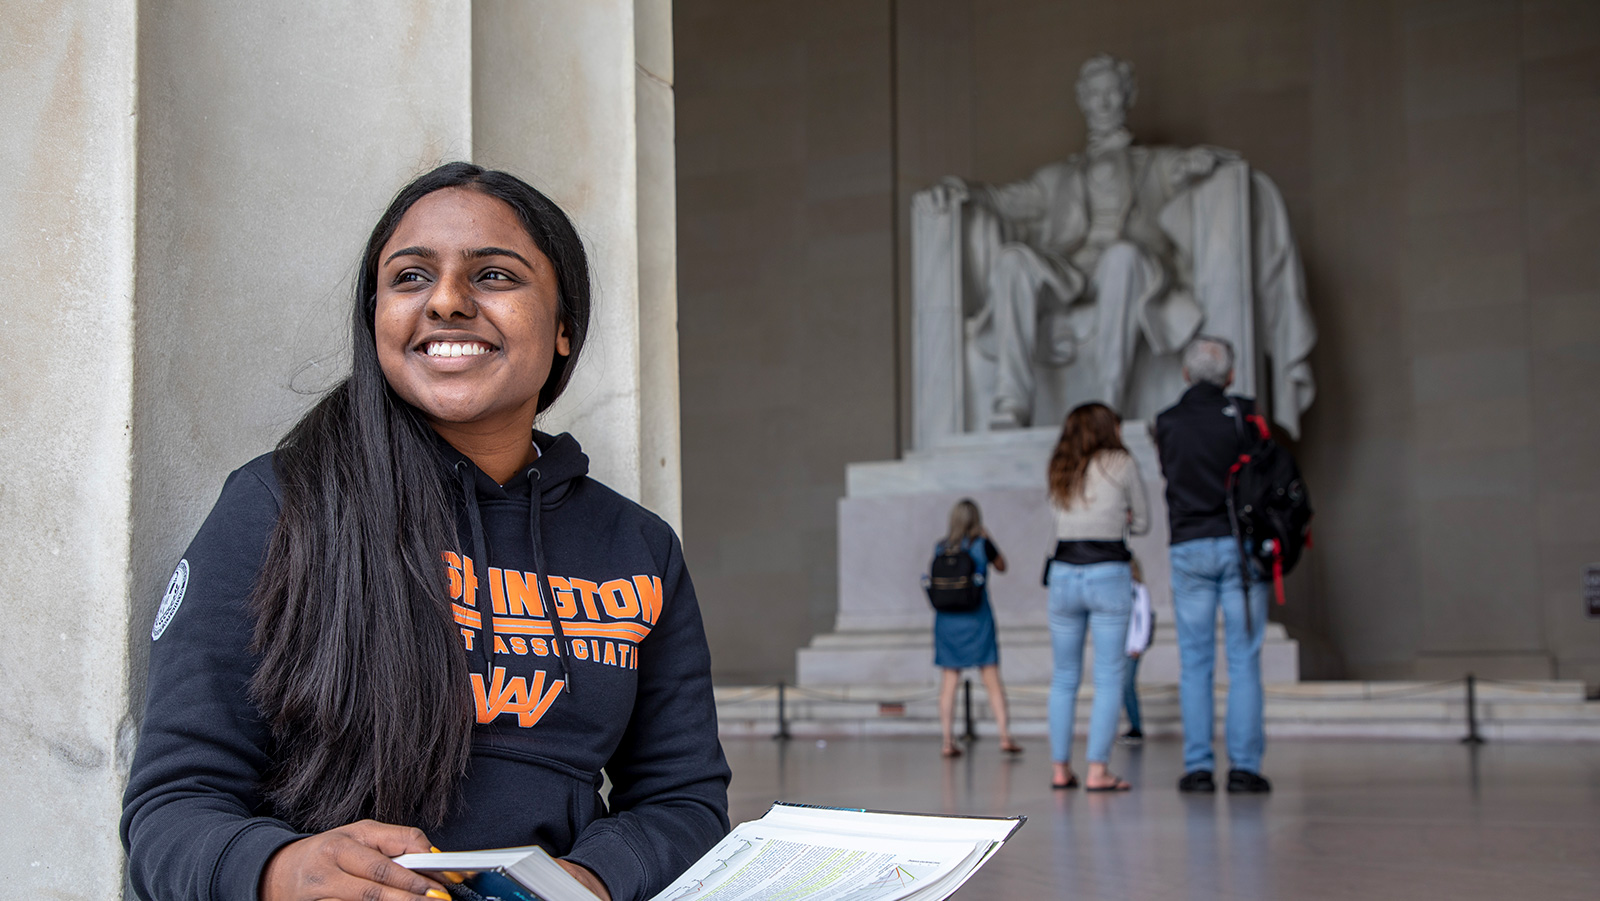 Smiling student in front of Lincoln Memorial